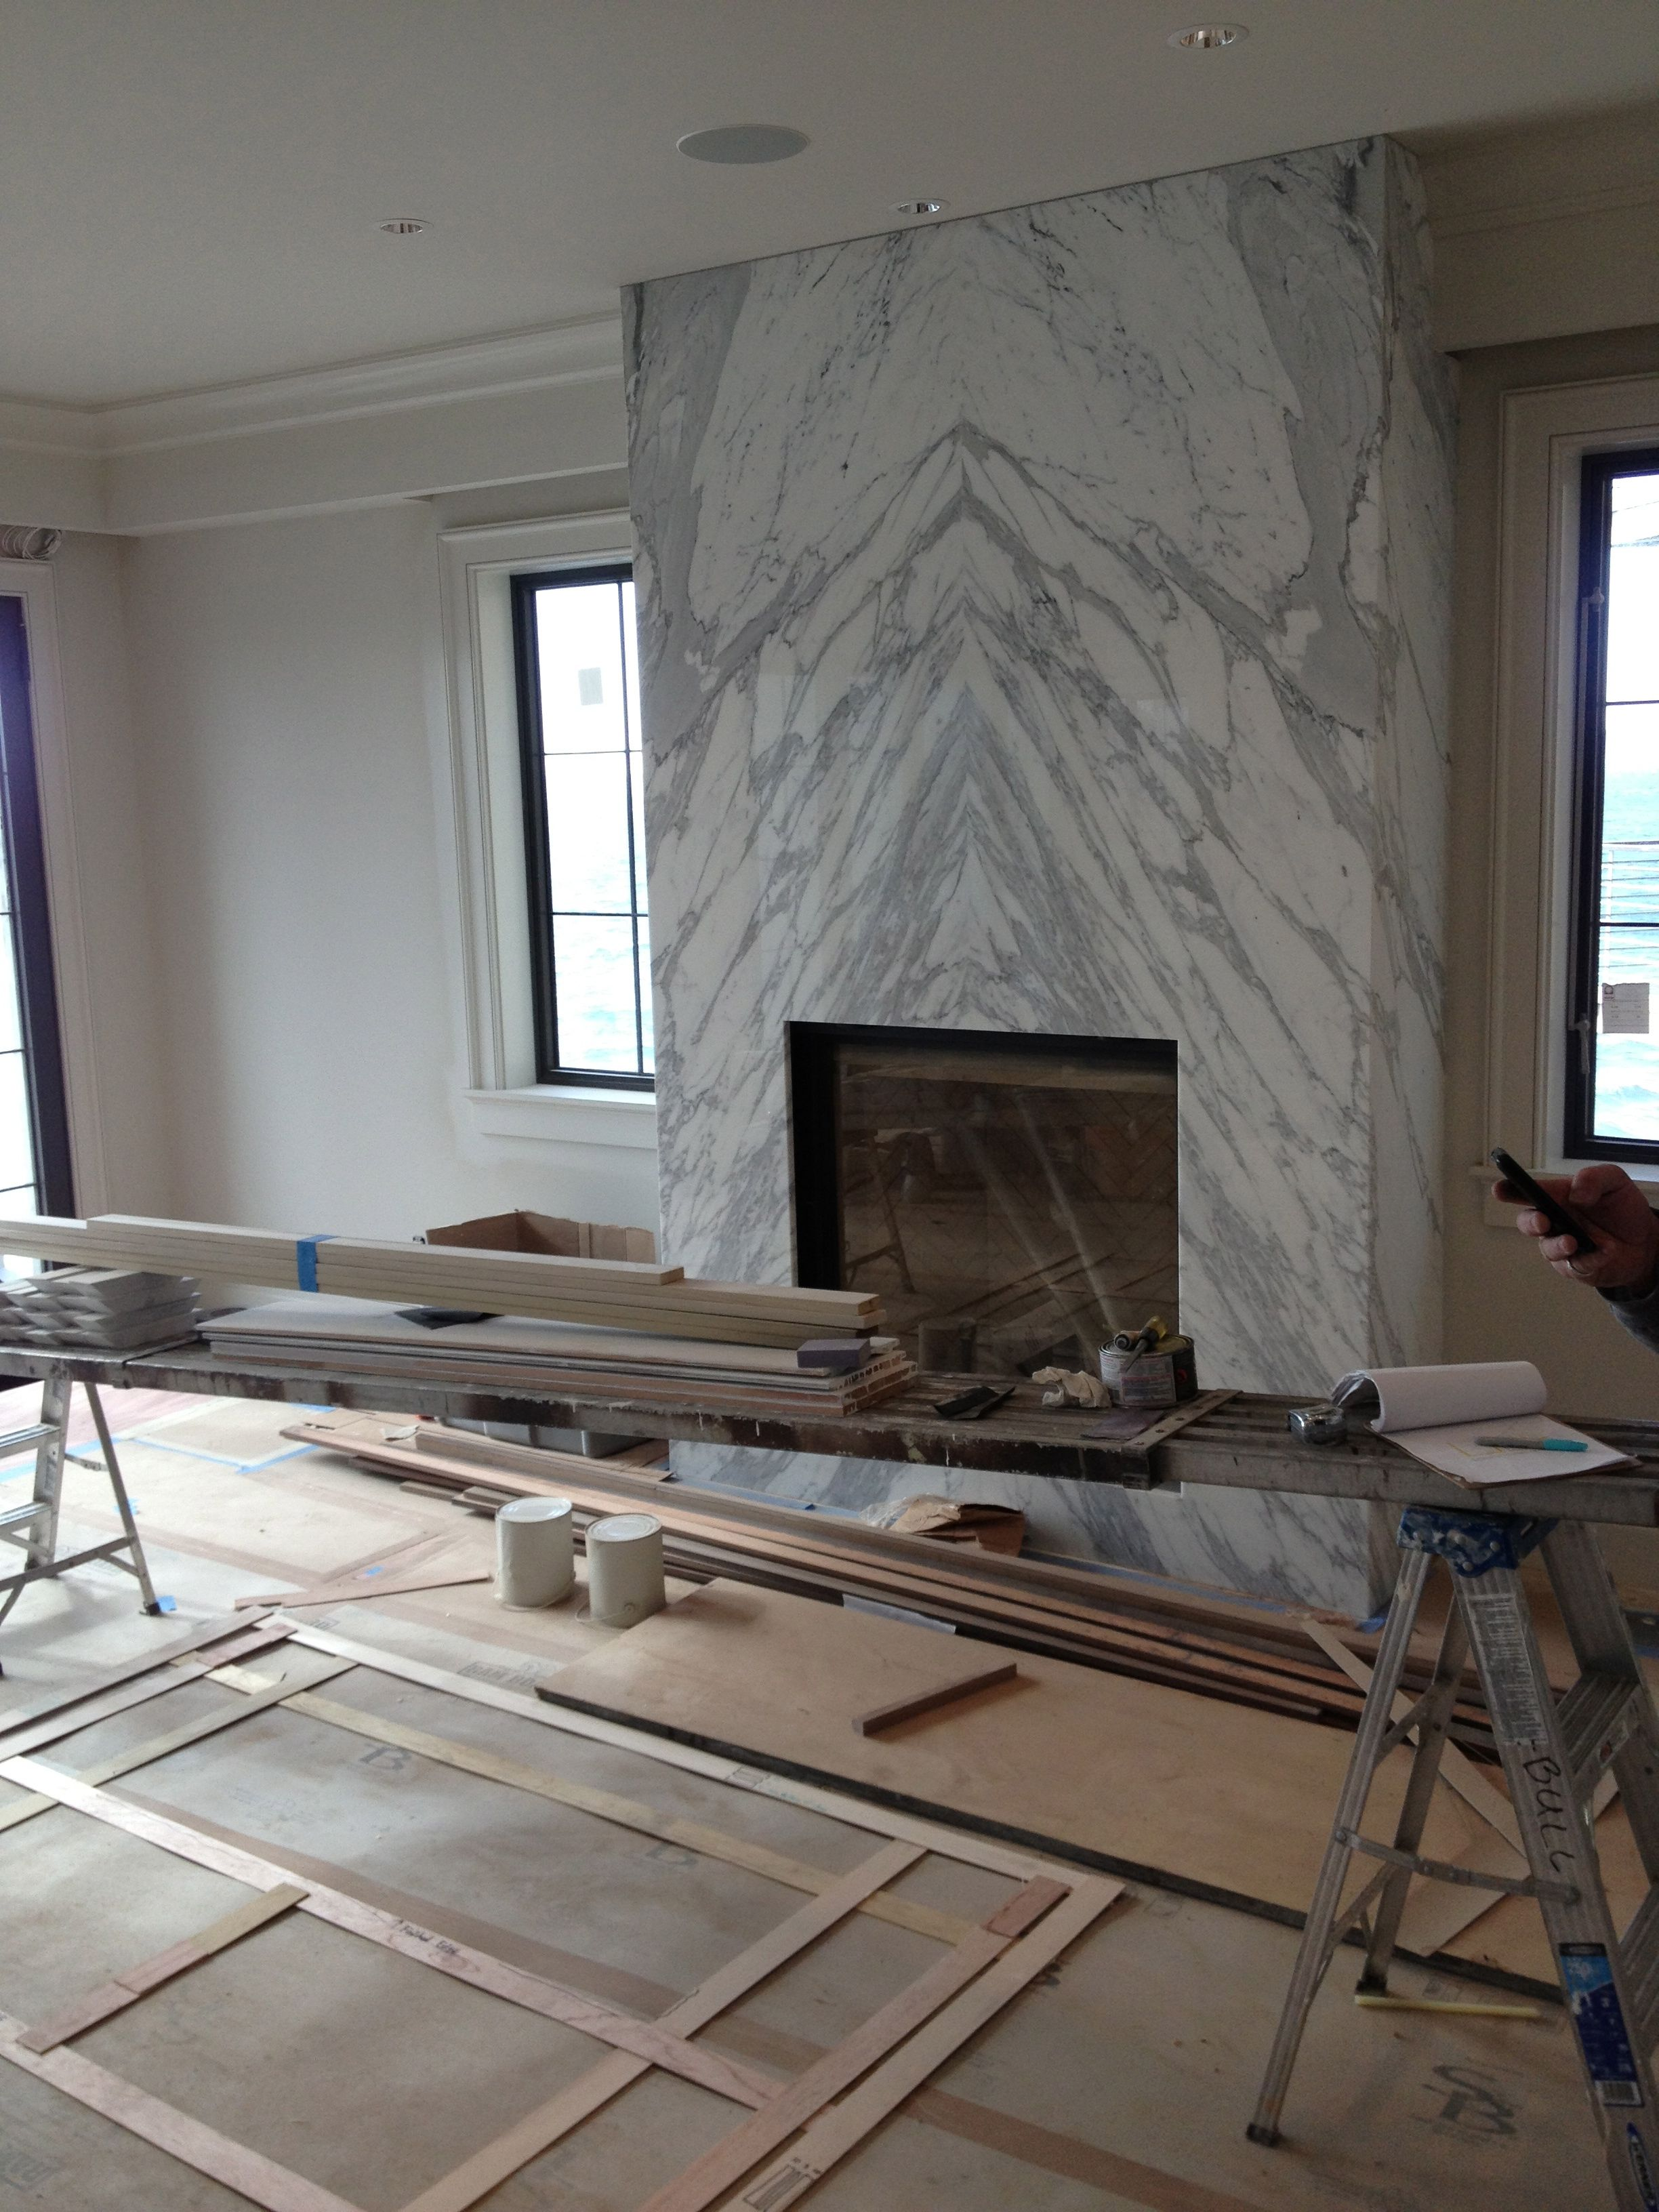 Granite Slab for Fireplace Hearth Lovely Contemporary Slab Stone Fireplace Calacutta Carrara Marble